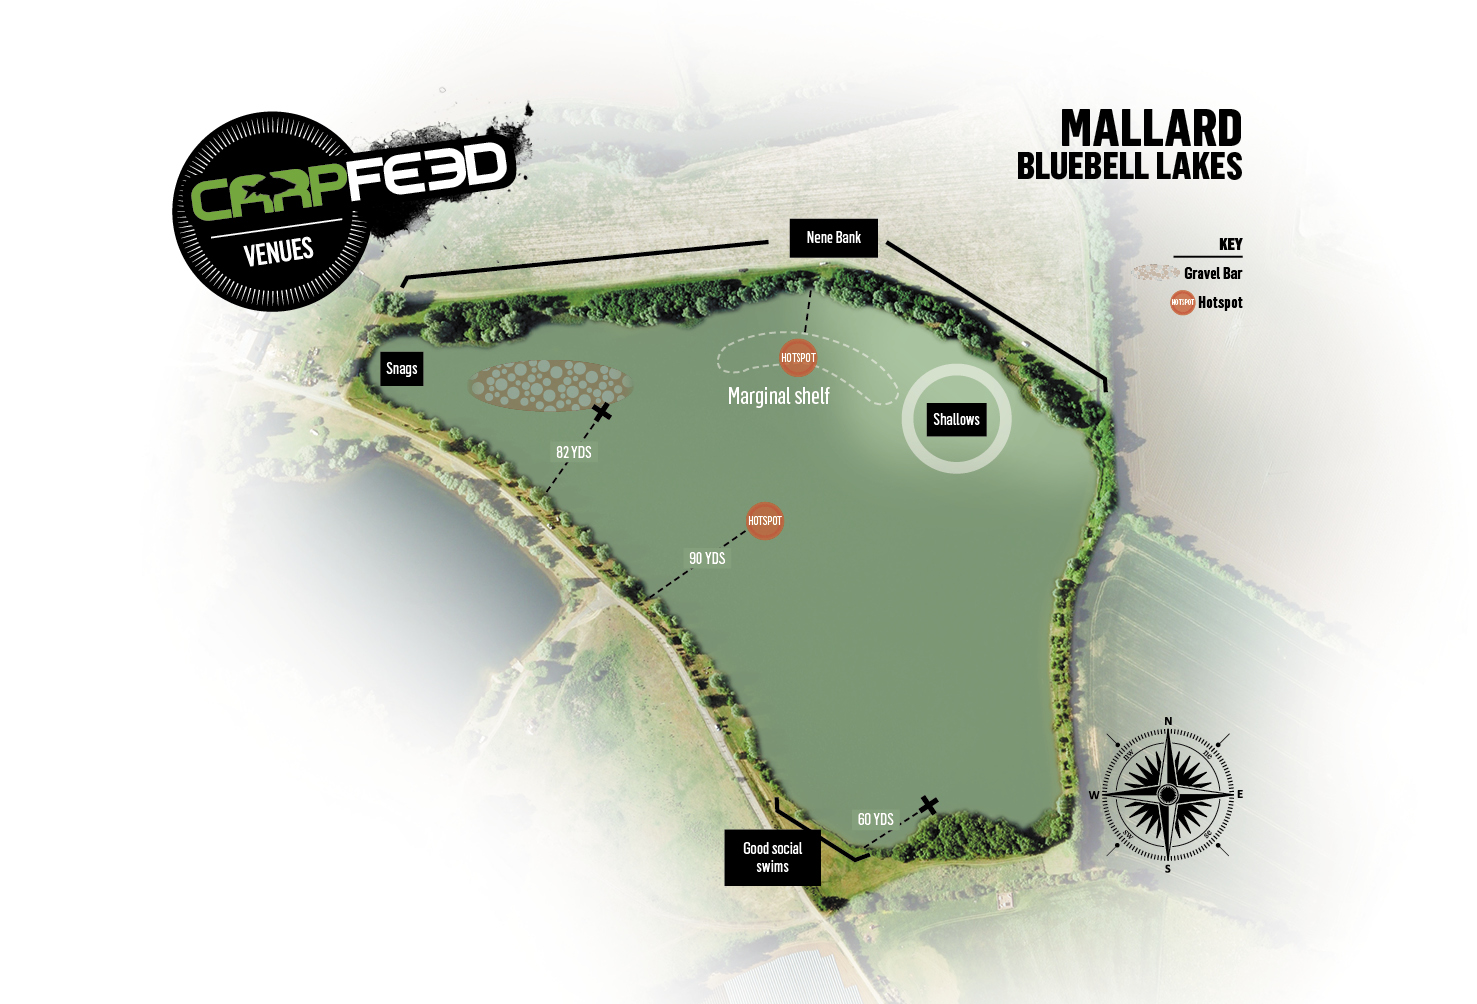 CLICK FOR OUR TACTICS GUIDE TO MALLARD